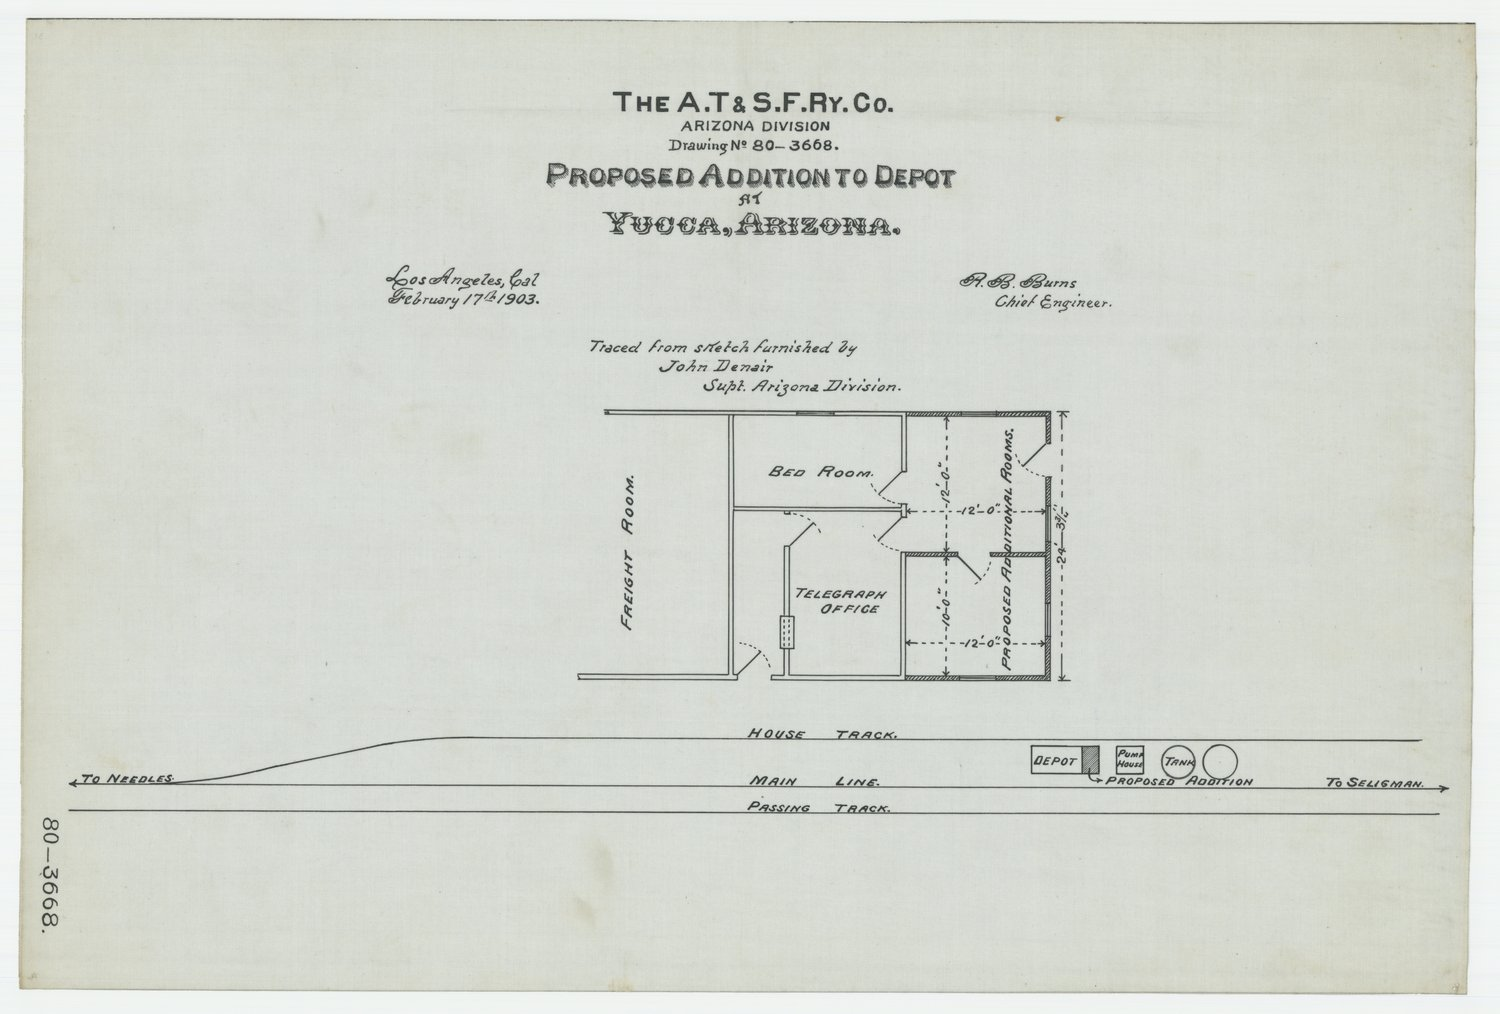 Proposed addition to depot at Yucca in Arizona Territory, AT&SF Ry Co., Arizona Division